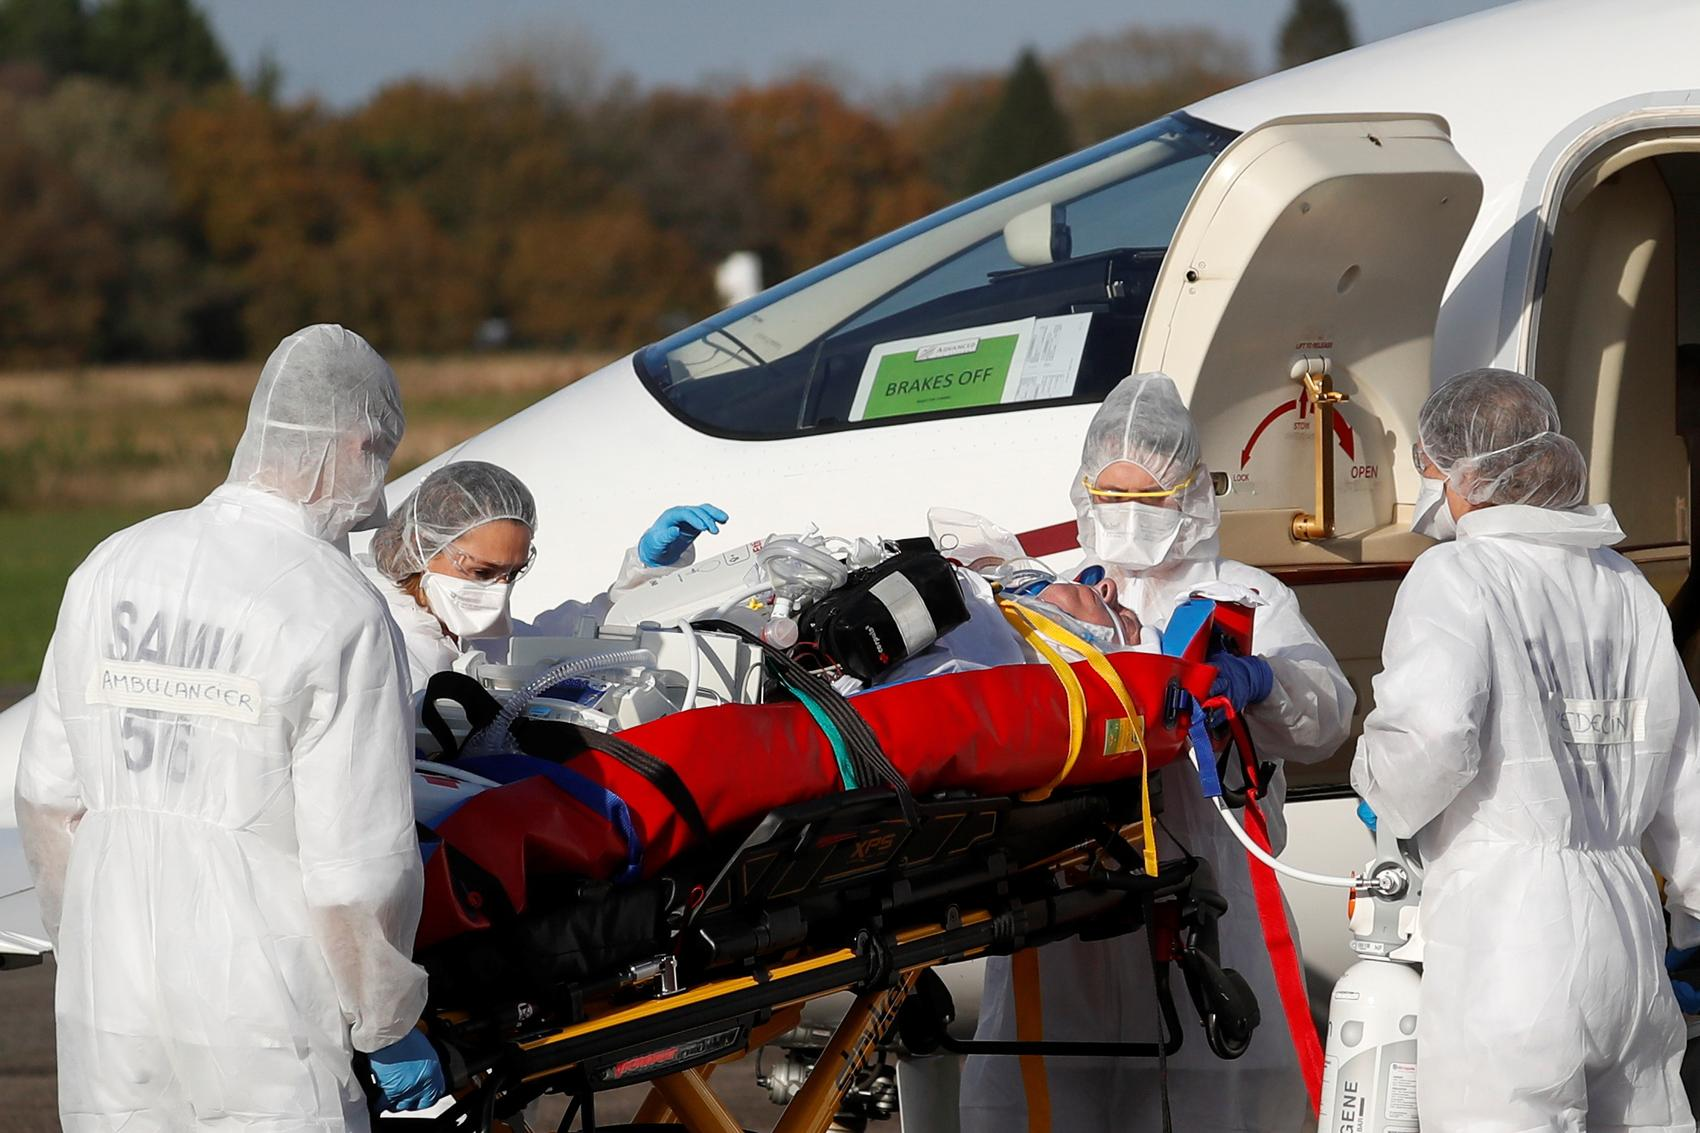 France sees record number of new COVID-19 cases, hospitalisations spike